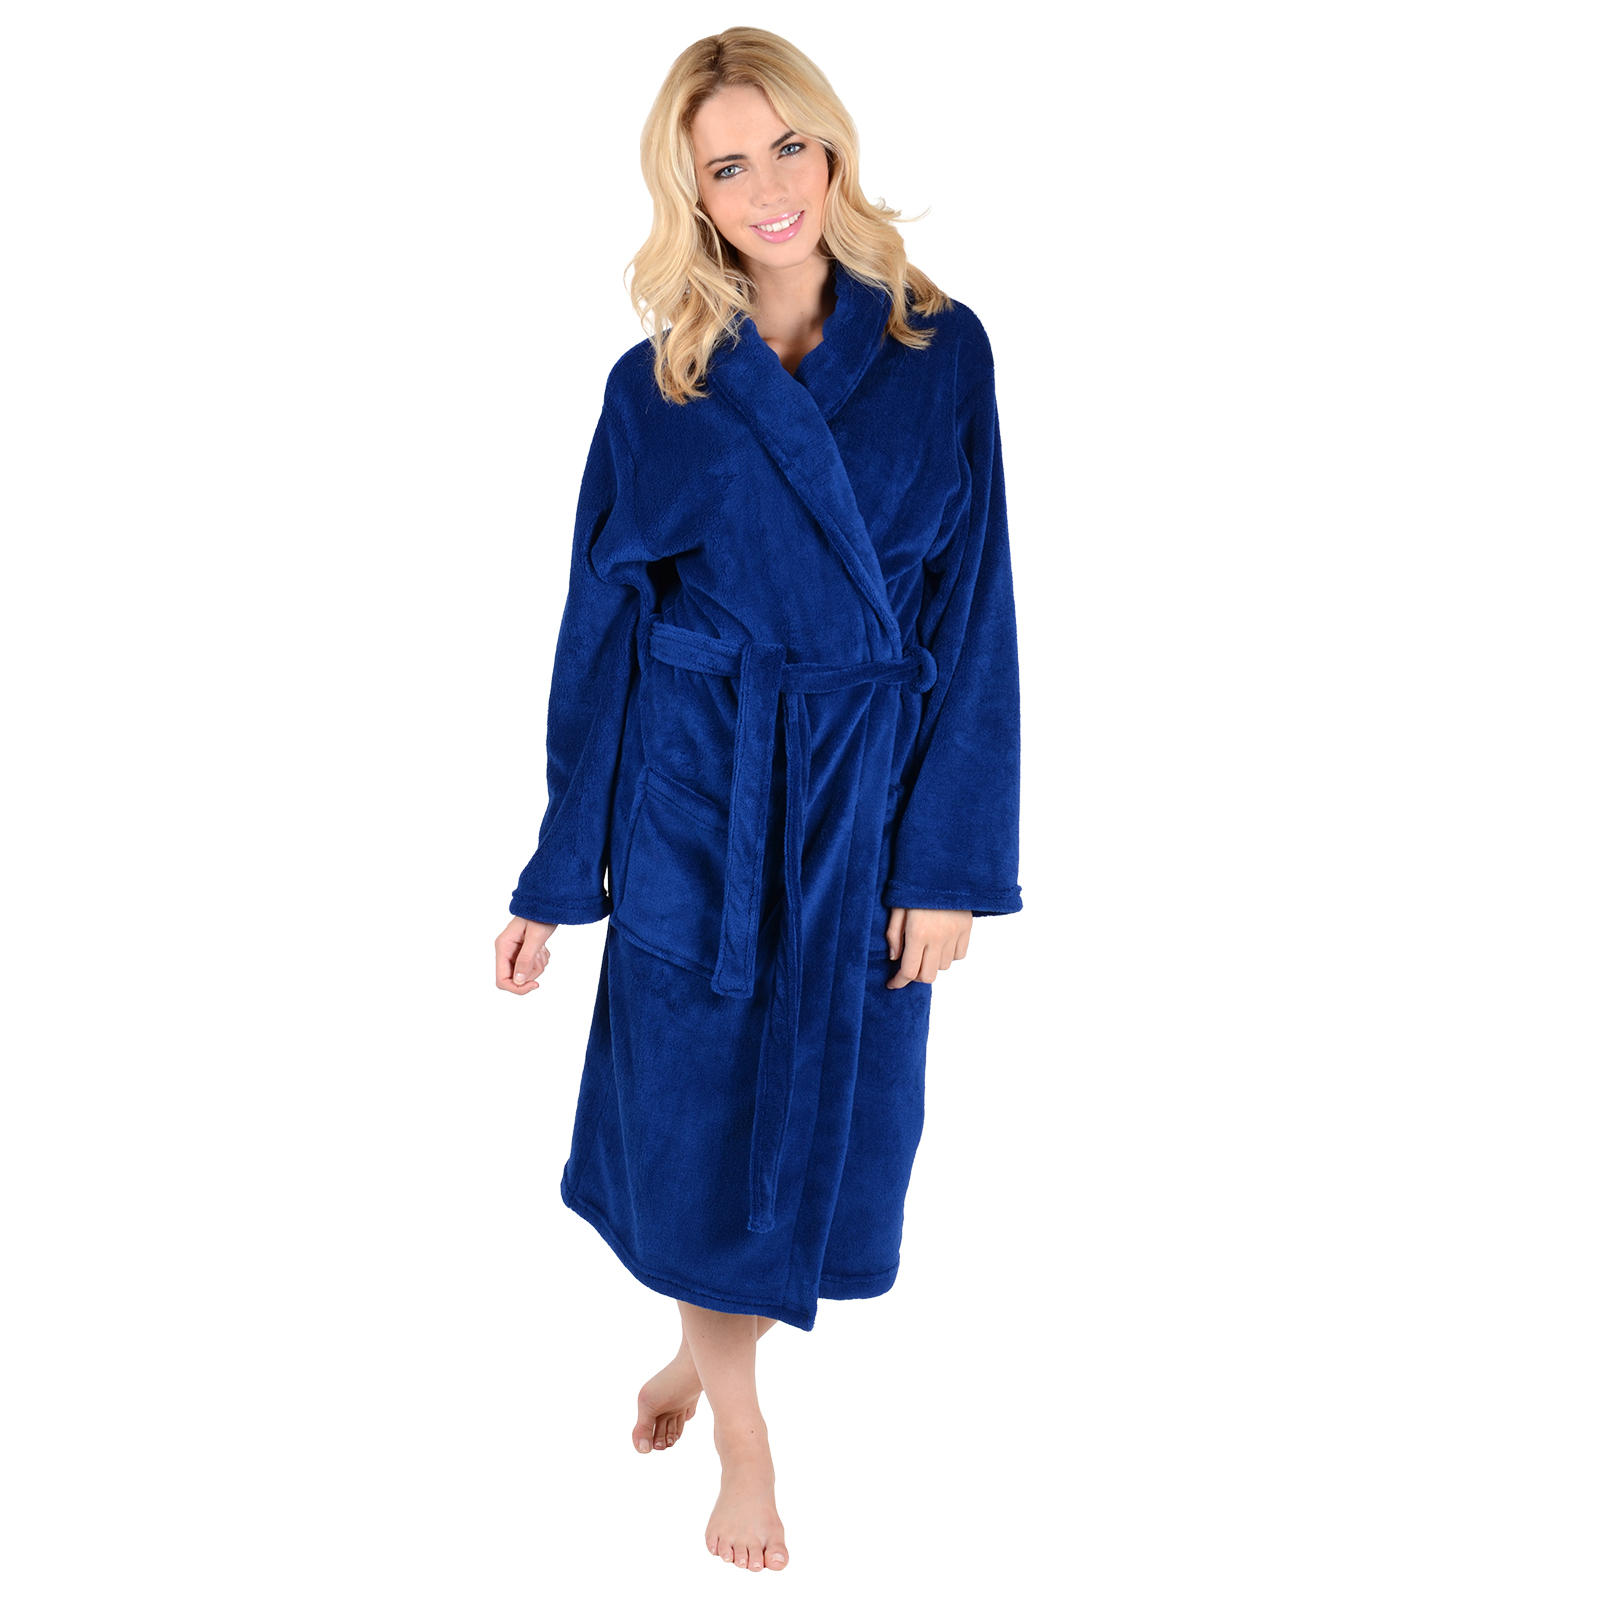 Ladies Bath Robe - Gorgeous Soft Coral Fleece Dressing Gown Small ...